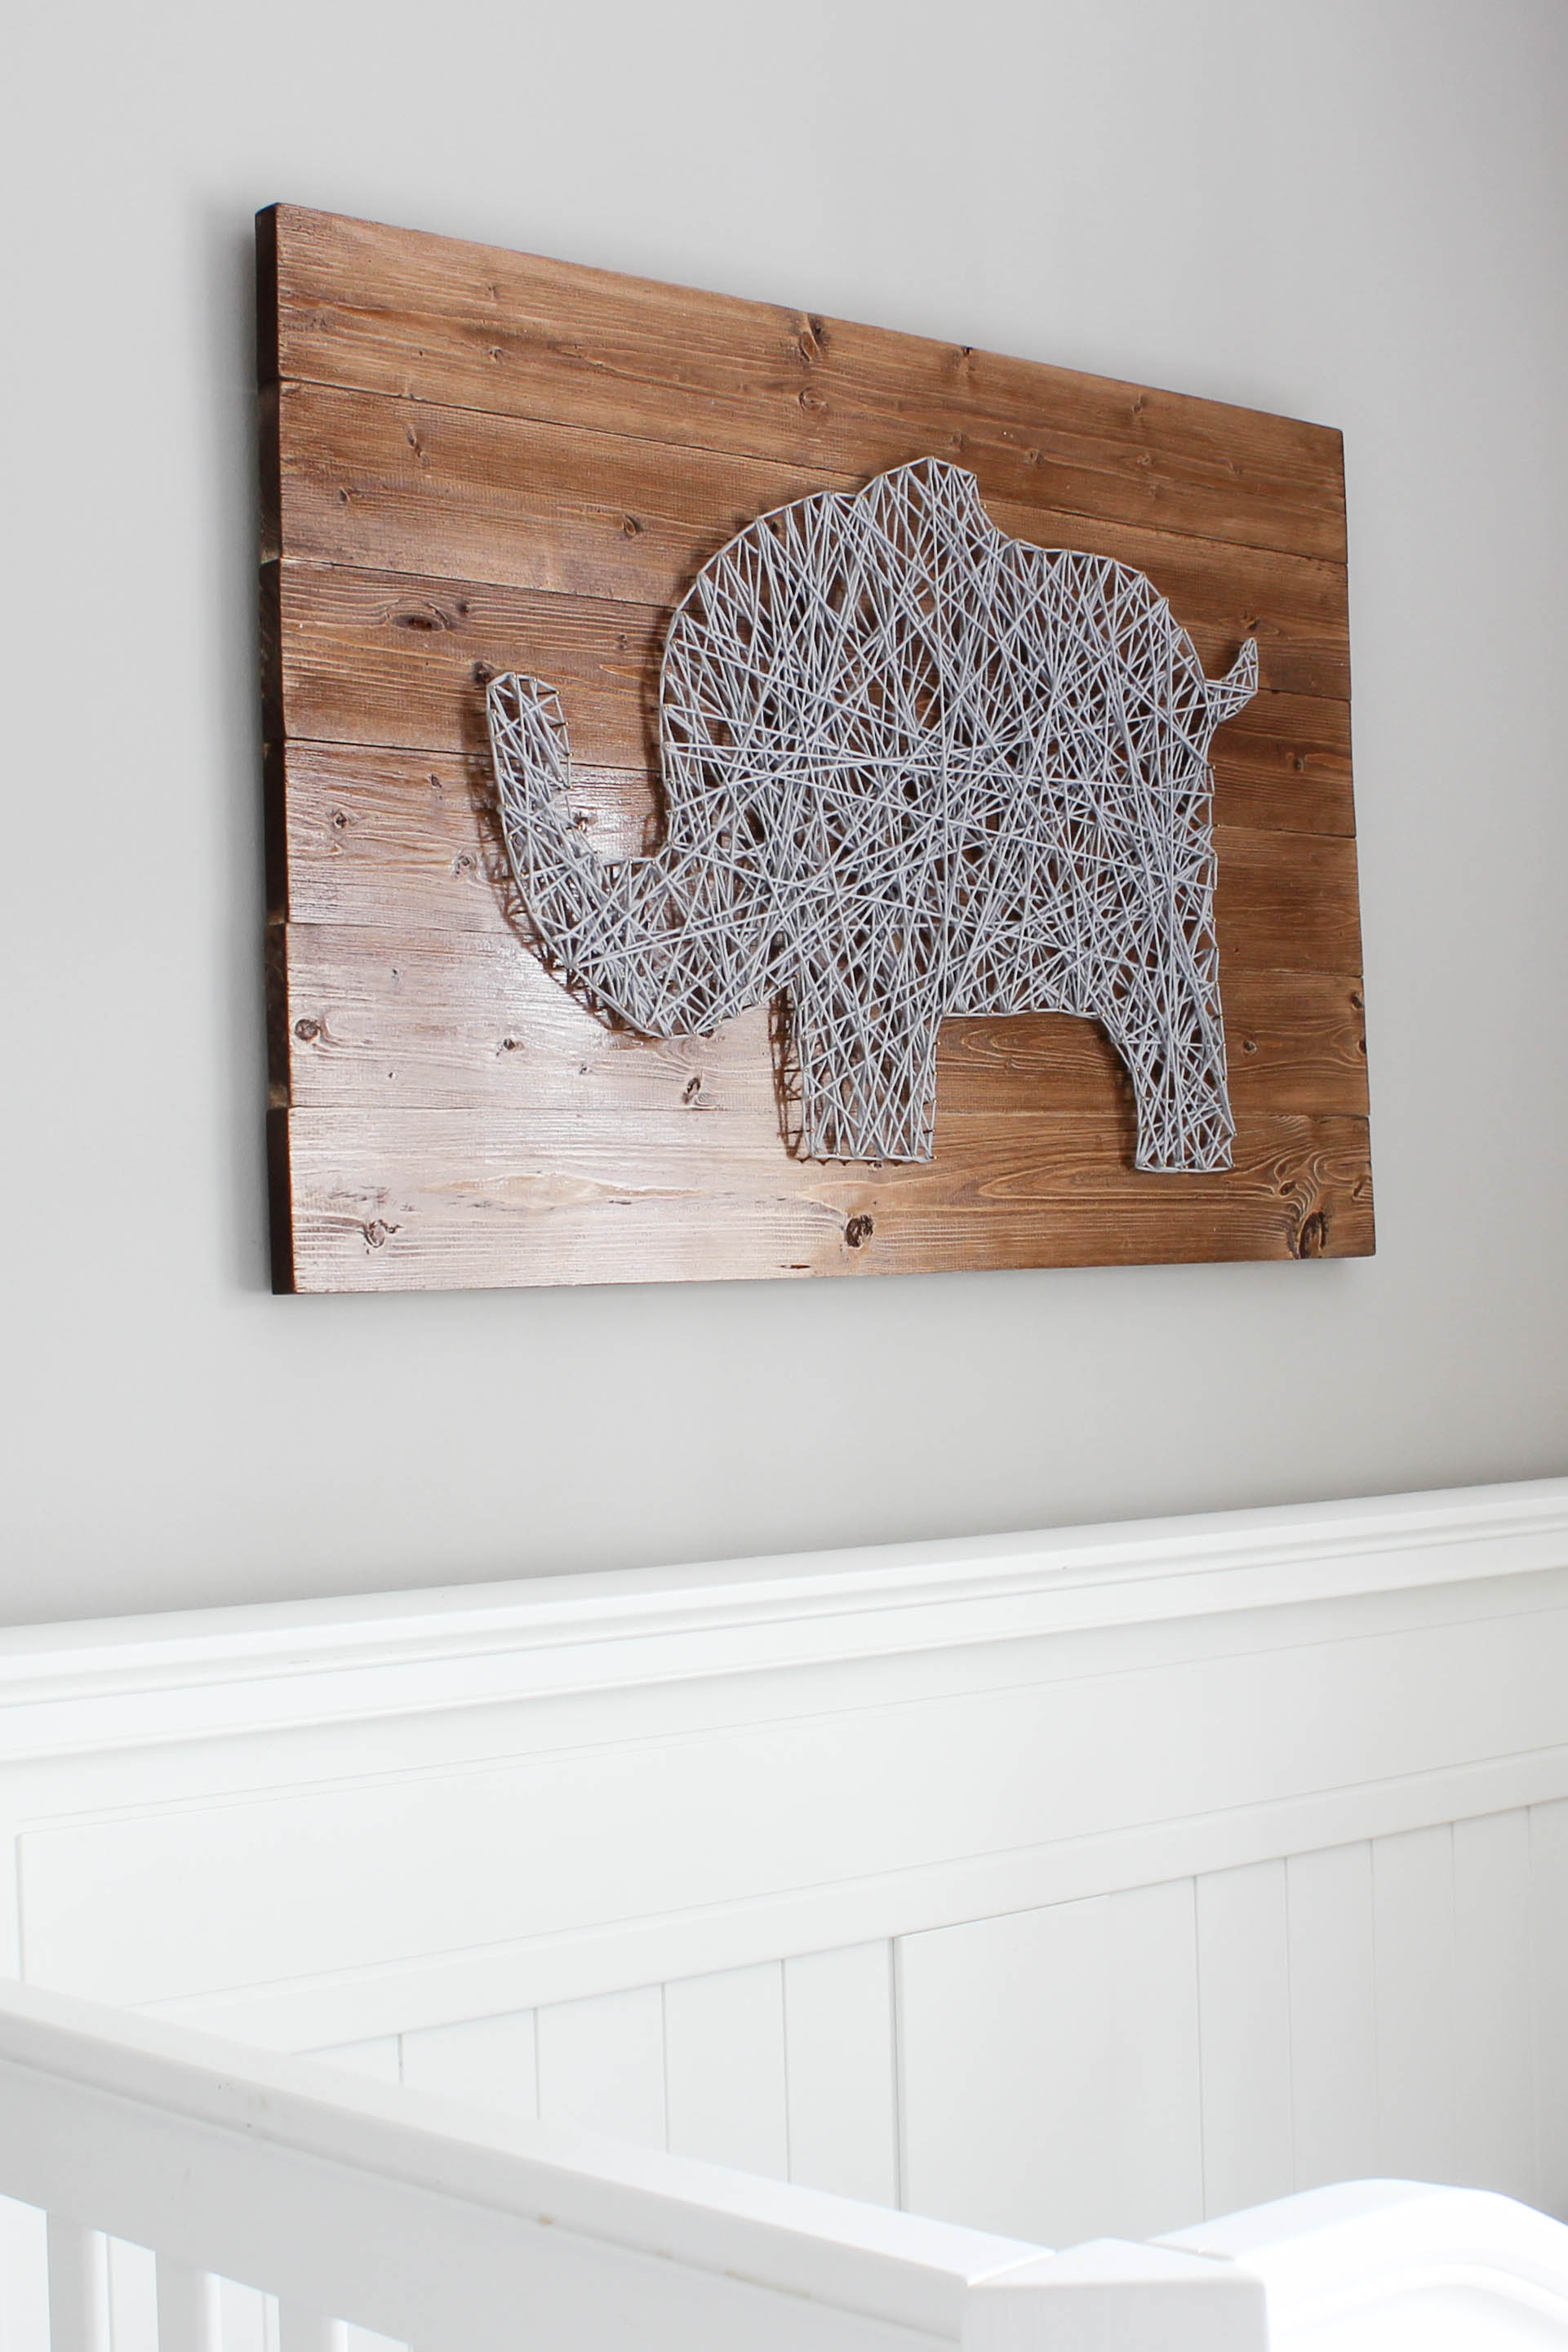 Diy nursery string art tutorial erin spain - Diy babyzimmer ...